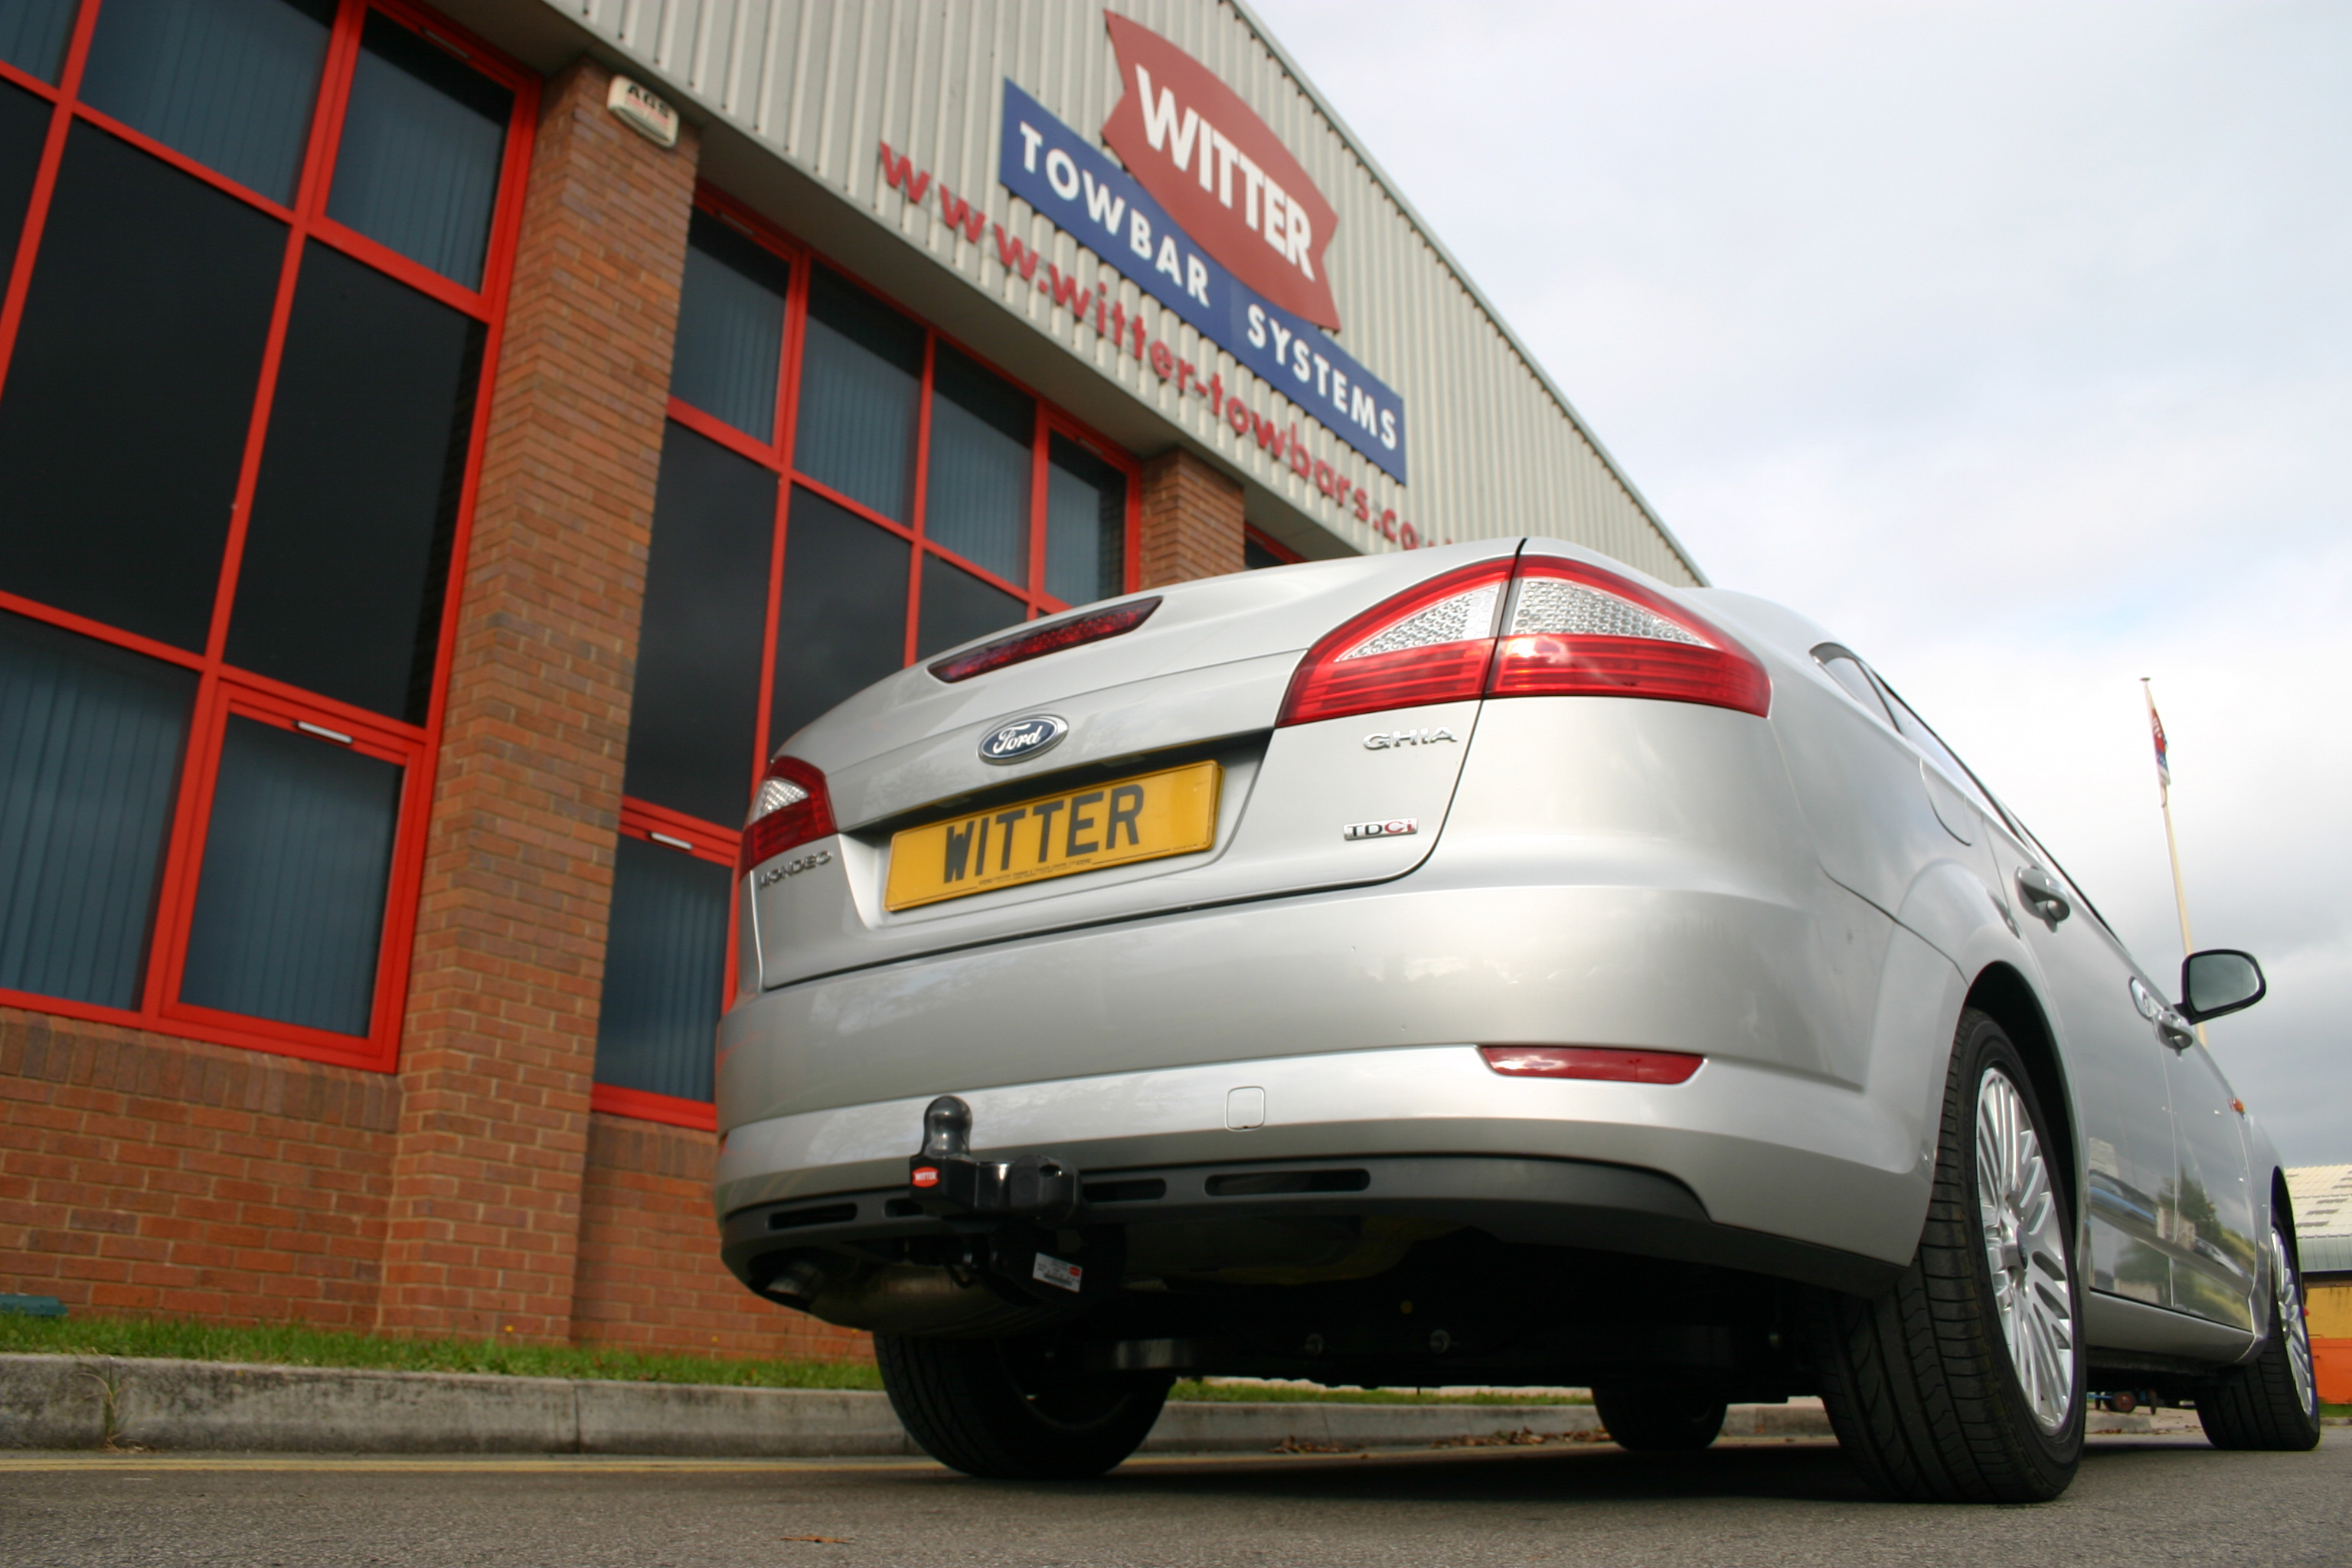 Ford Mondeo Hatchback 2007 2015 Witter Flange Tow Bar Wiring Diagram Towbar